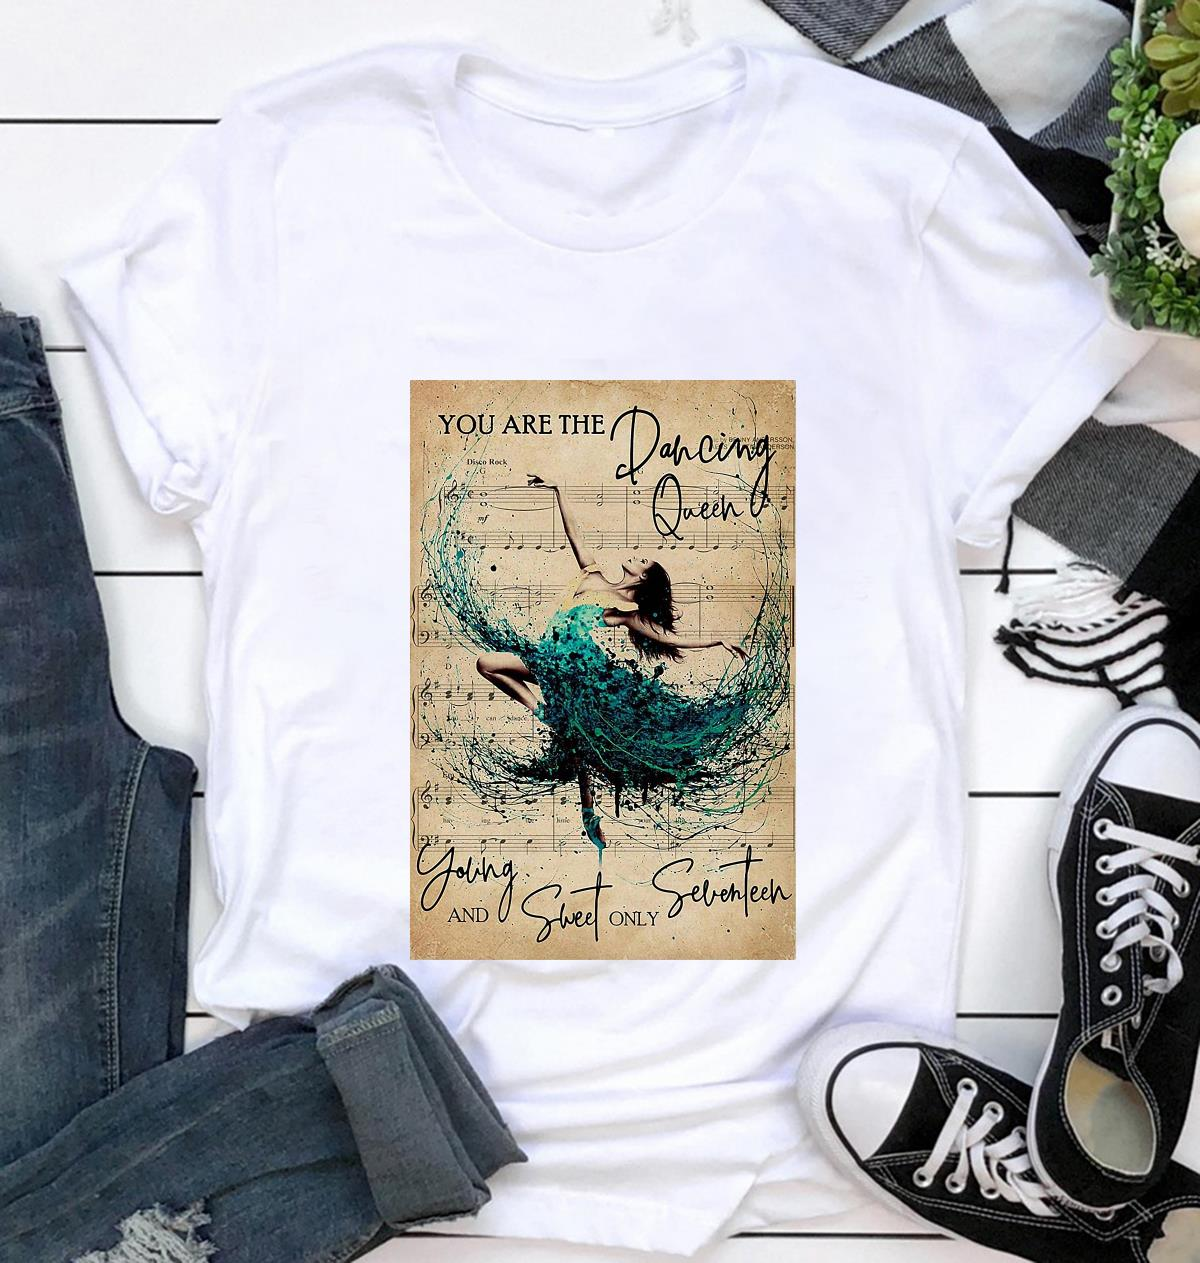 You are the dancing queen young and sweet only seventeen poster t-shirt